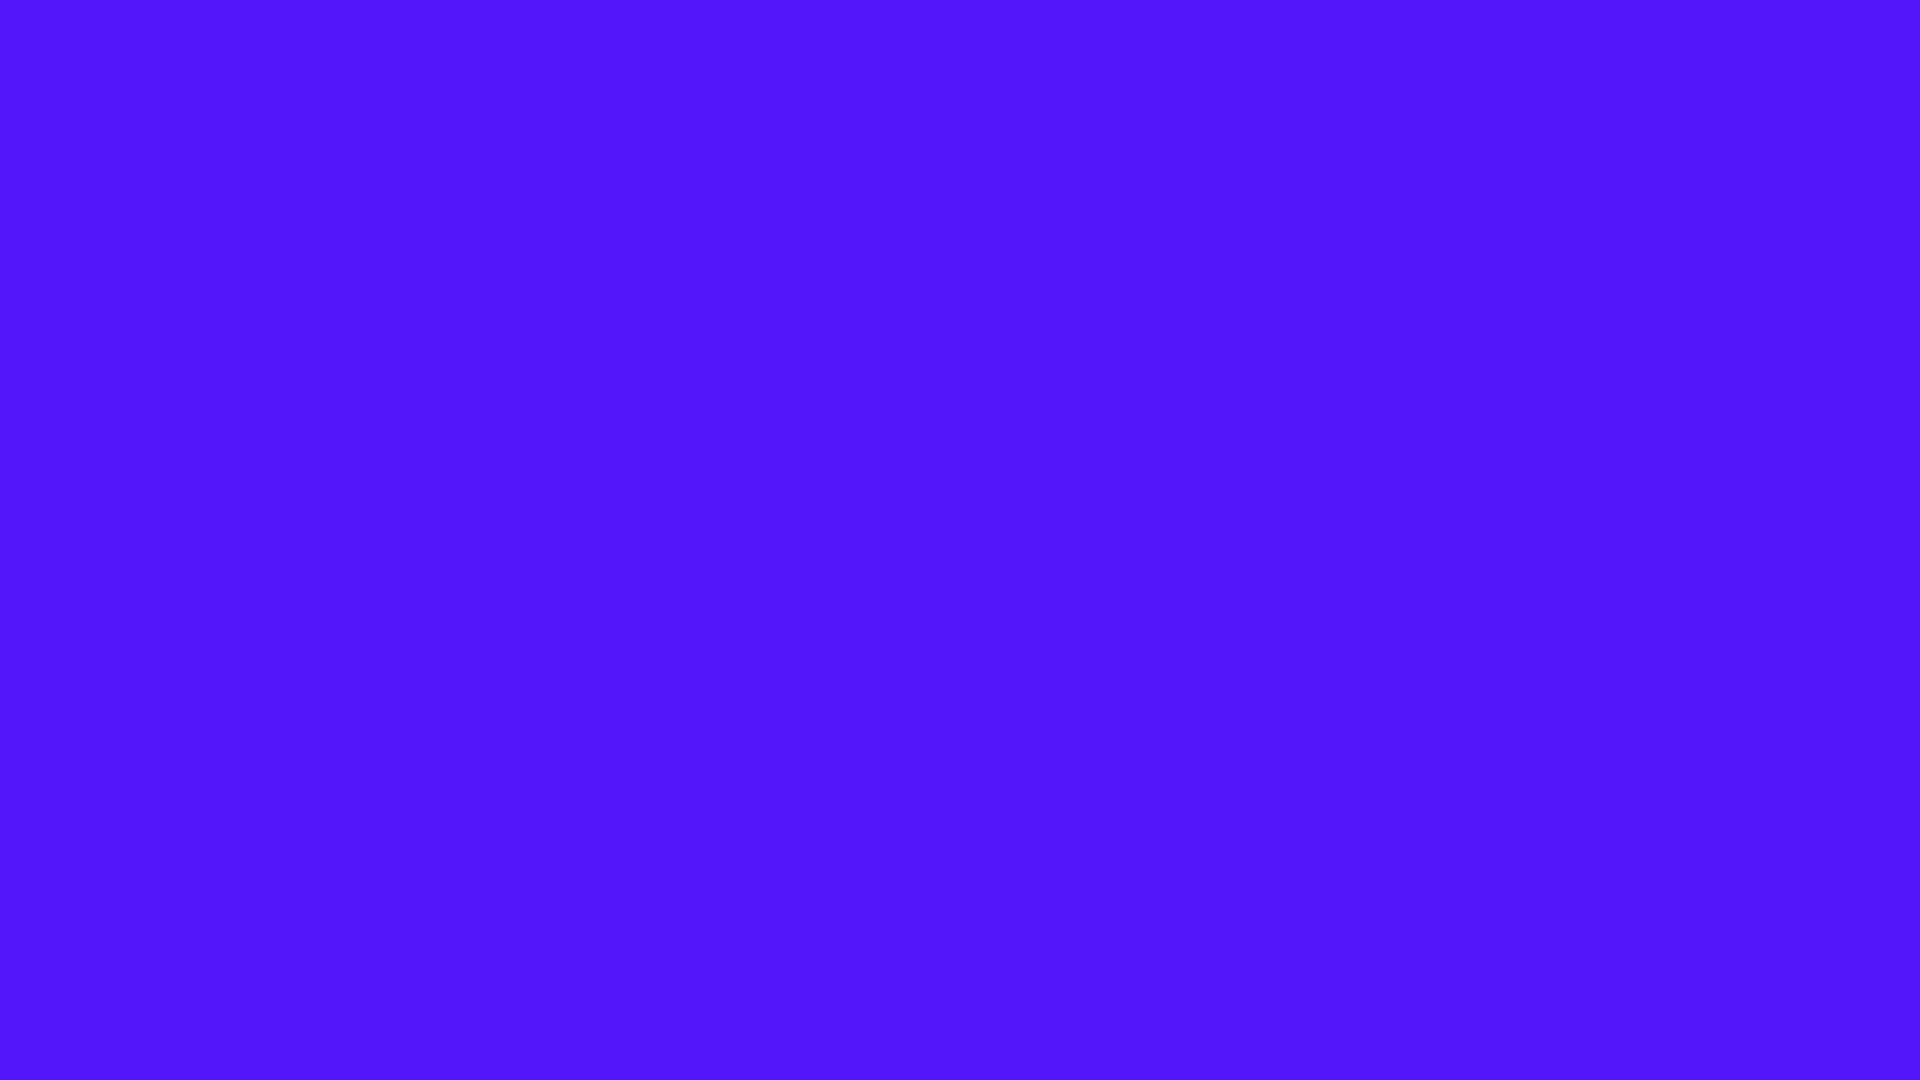 1920x1080 Han Purple Solid Color Background